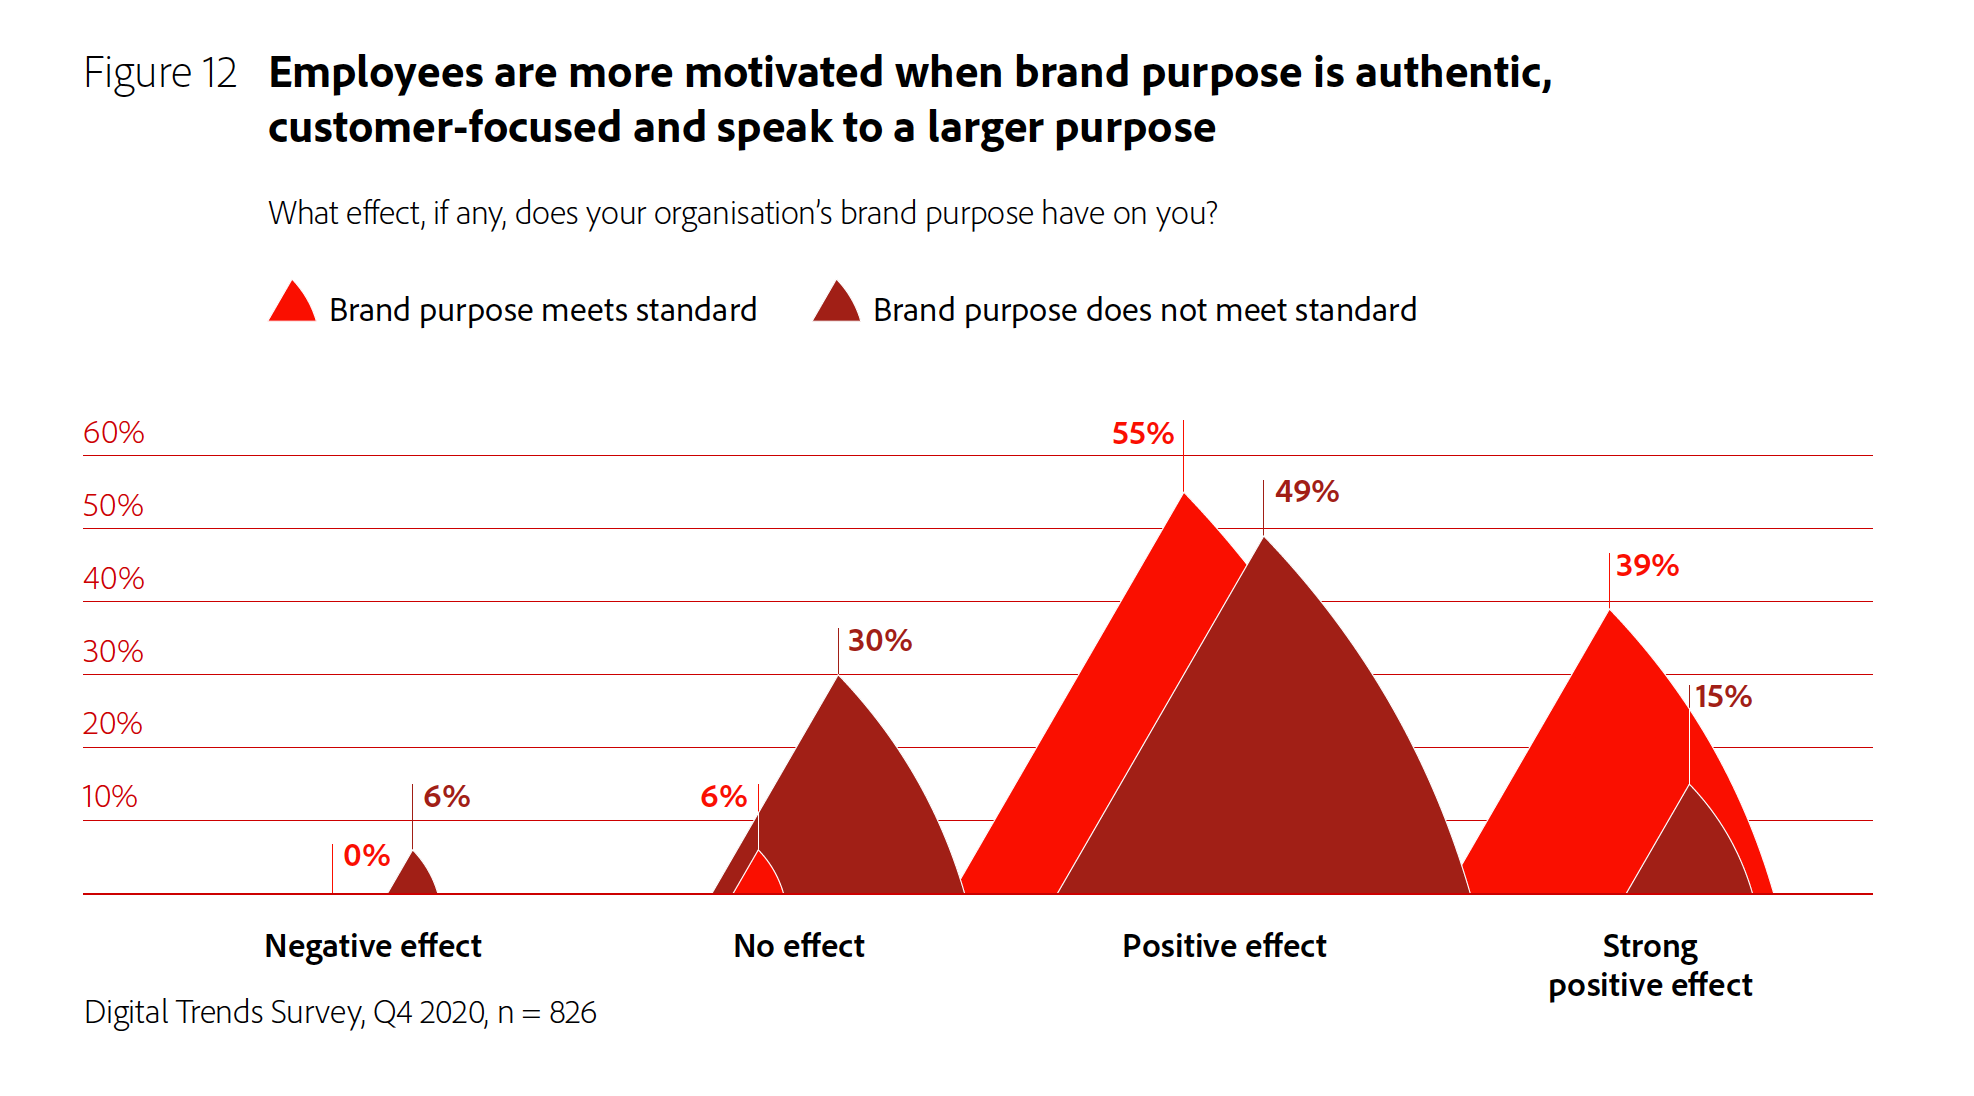 Figure 12: Employees are more motivated when brand purpose is authentic, customer-focused and speak to a larger purpose.